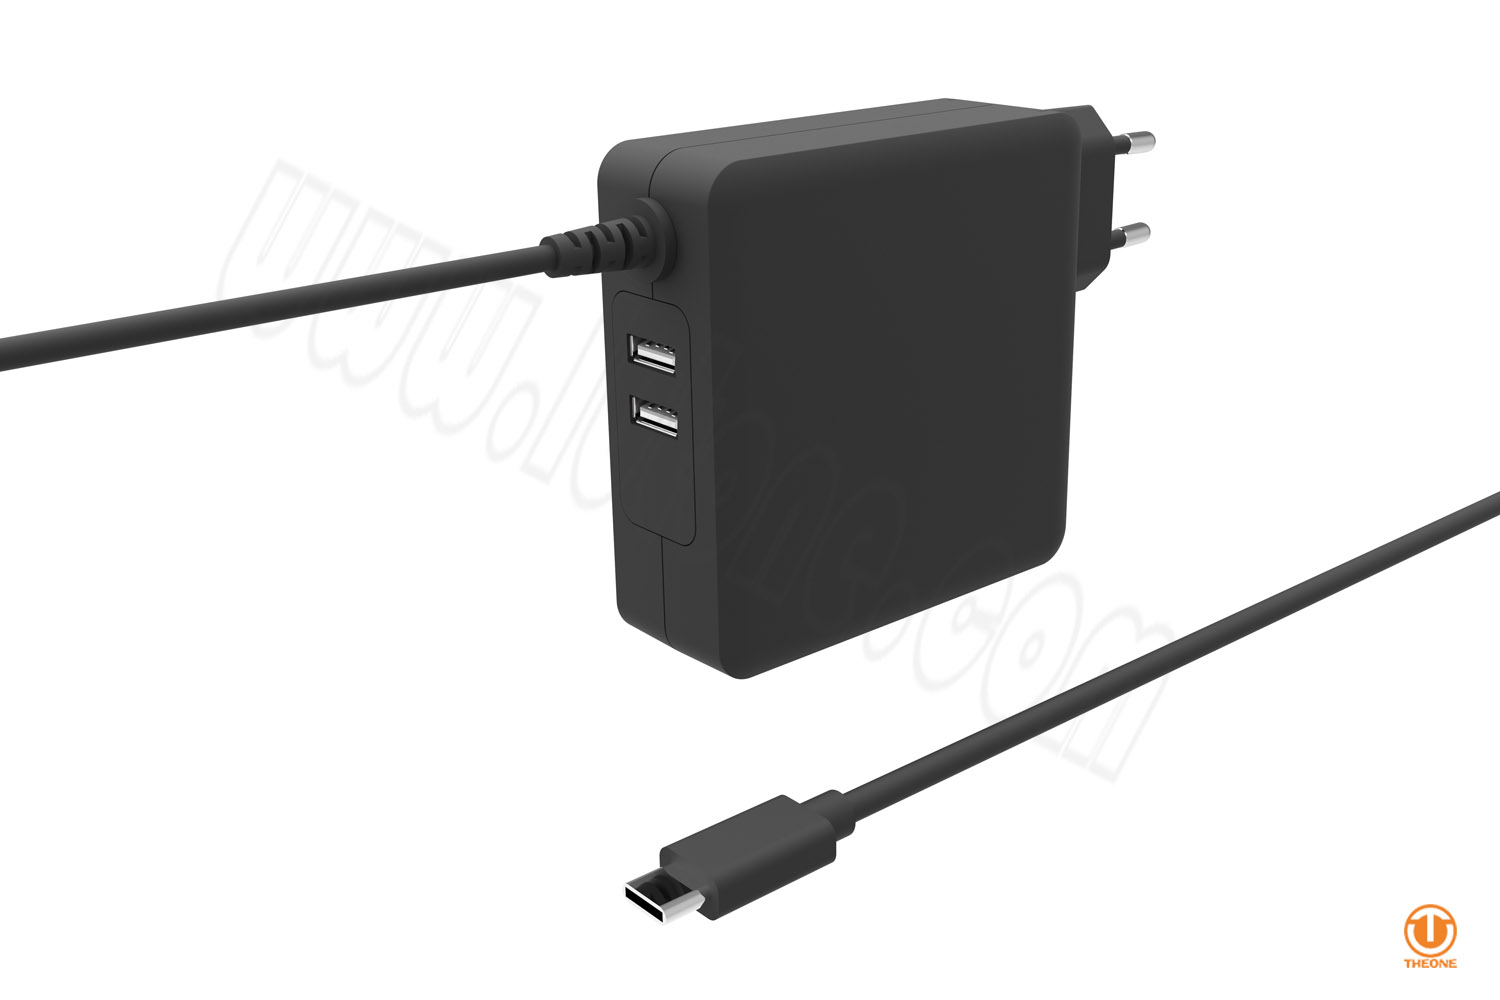 tp871laa-4 typec power delivery charger